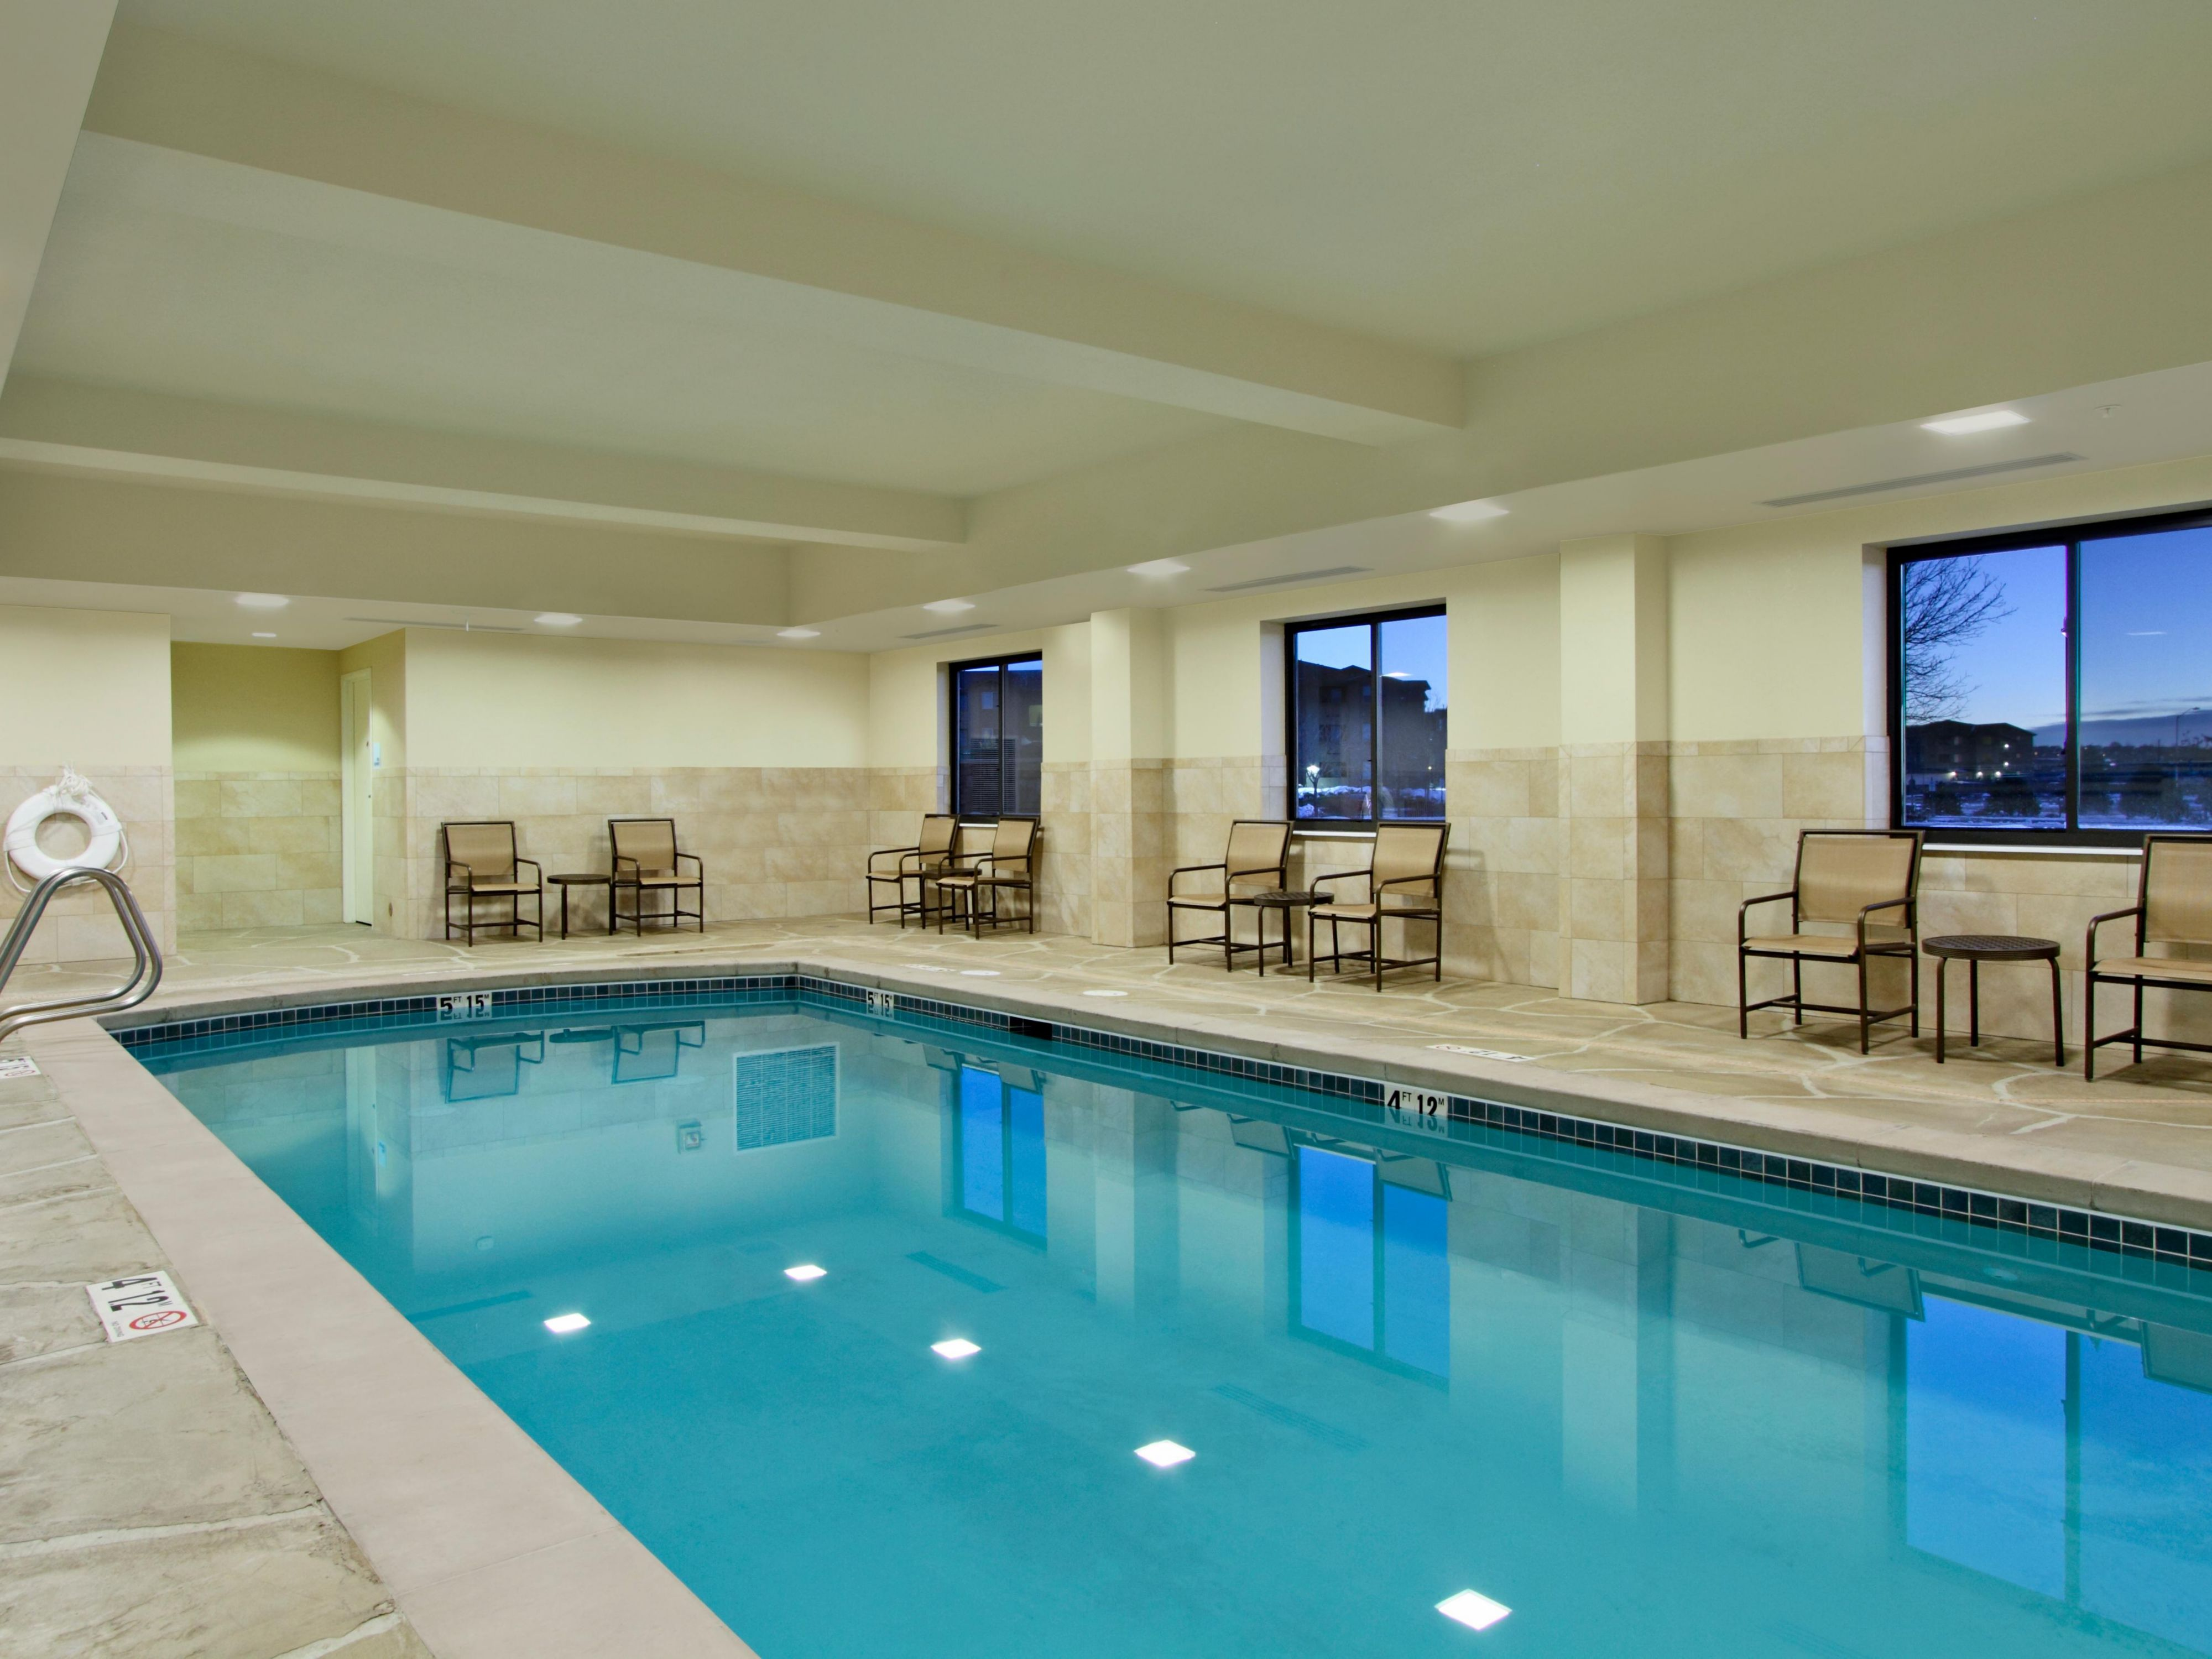 Enjoy a heated indoor pool at our beautiful Colorado Springs hotel